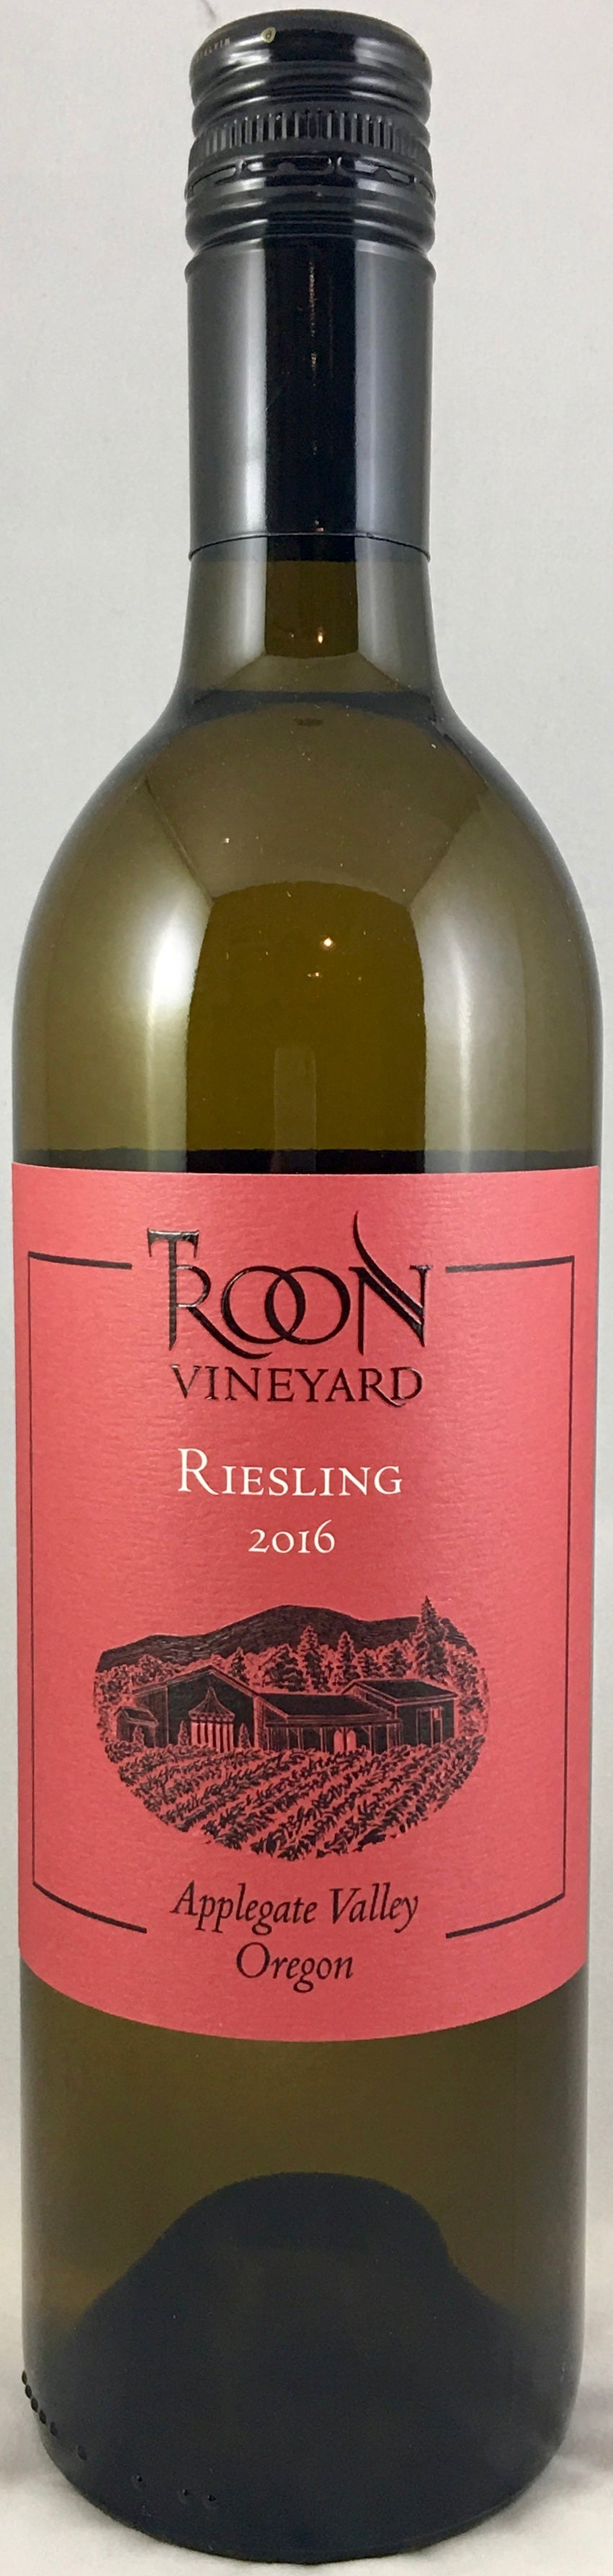 2016 Troon Whole Grape Ferment Riesling (Orange Wine), Applegate Valley - Qorkz